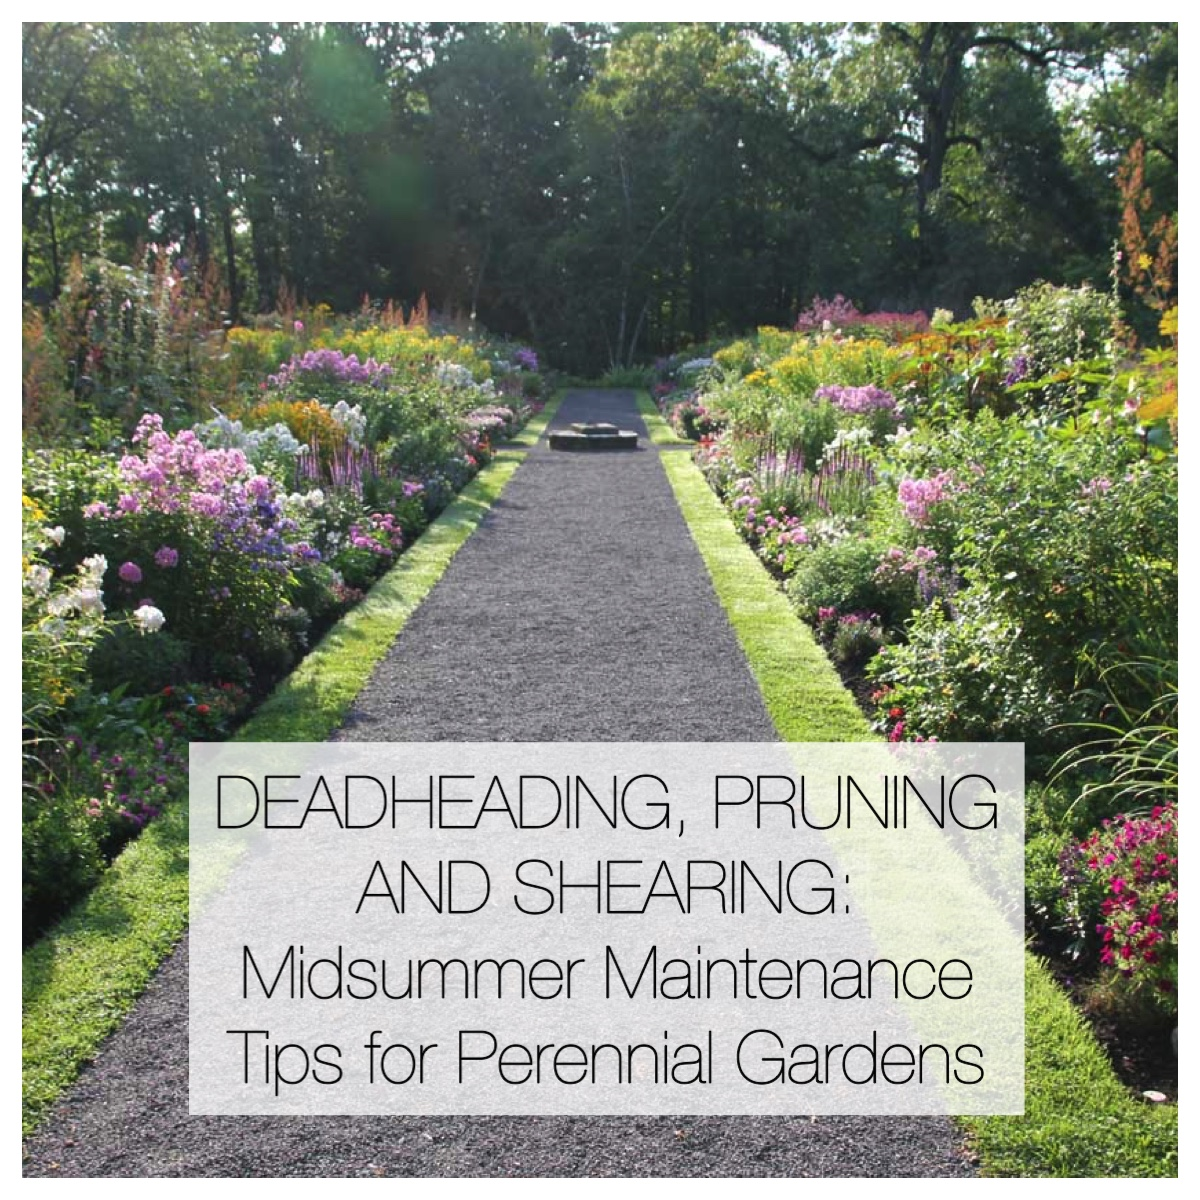 Midsummer Maintenance Tips for Perennial Gardens